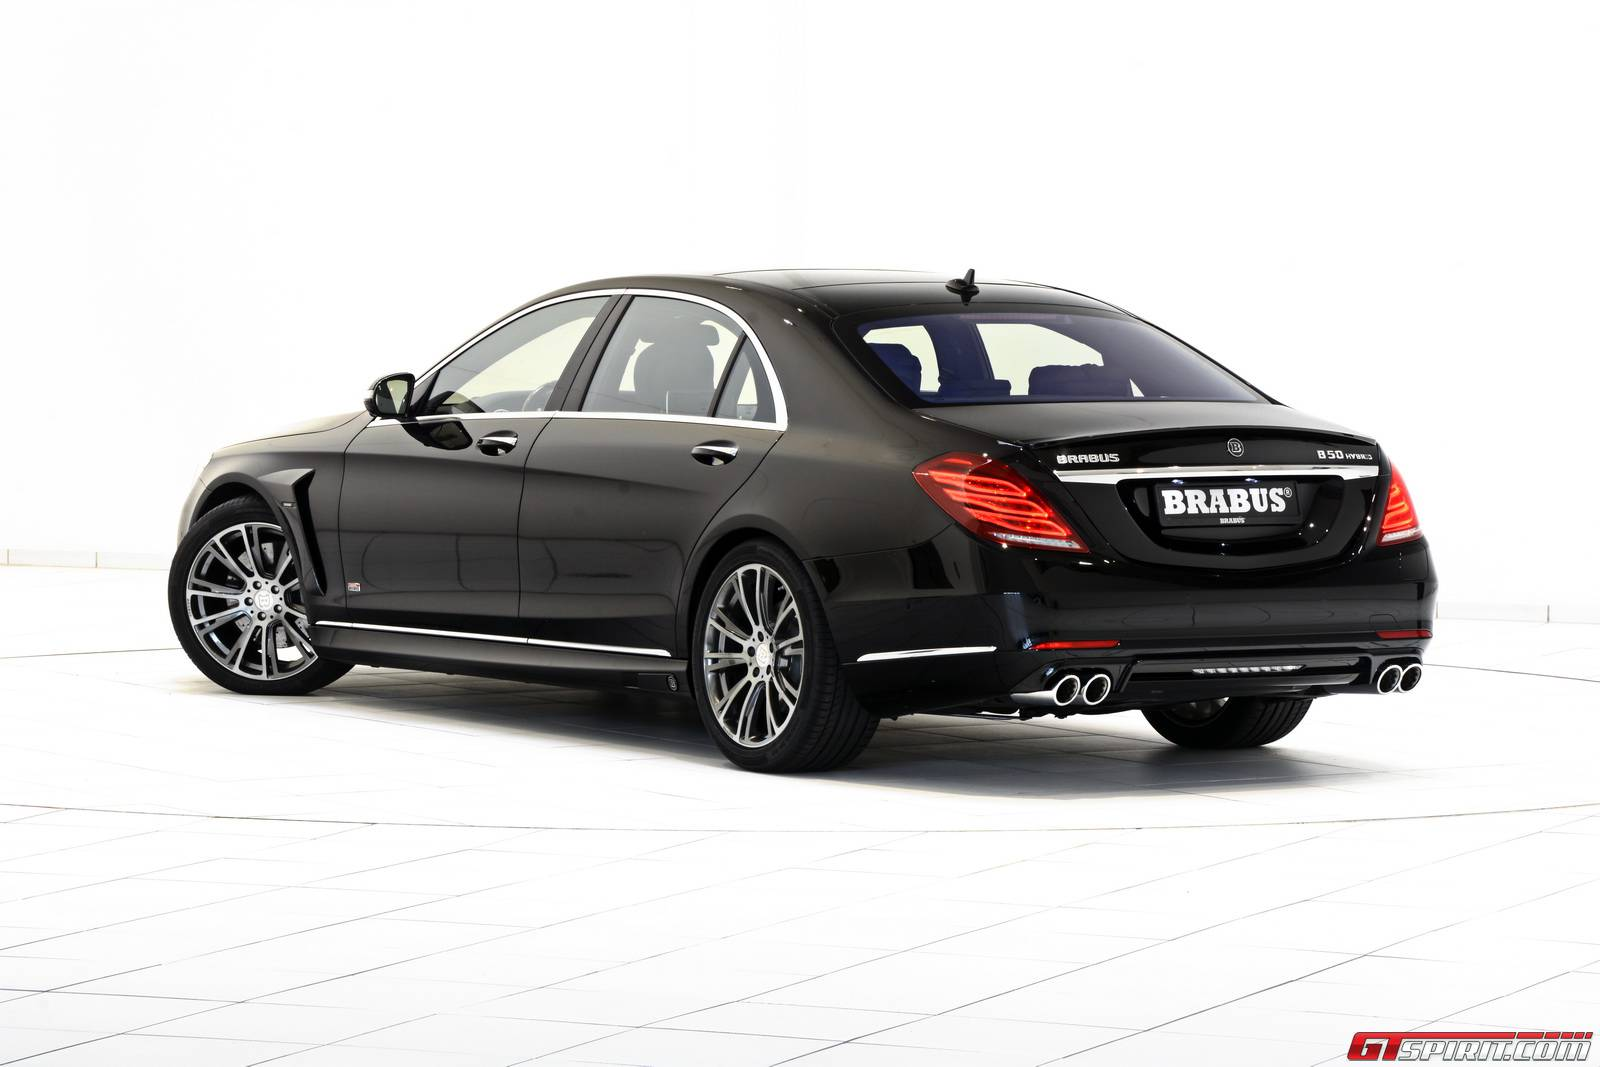 Image gallery mercedes benz s500 for Mercedes benz s500 price